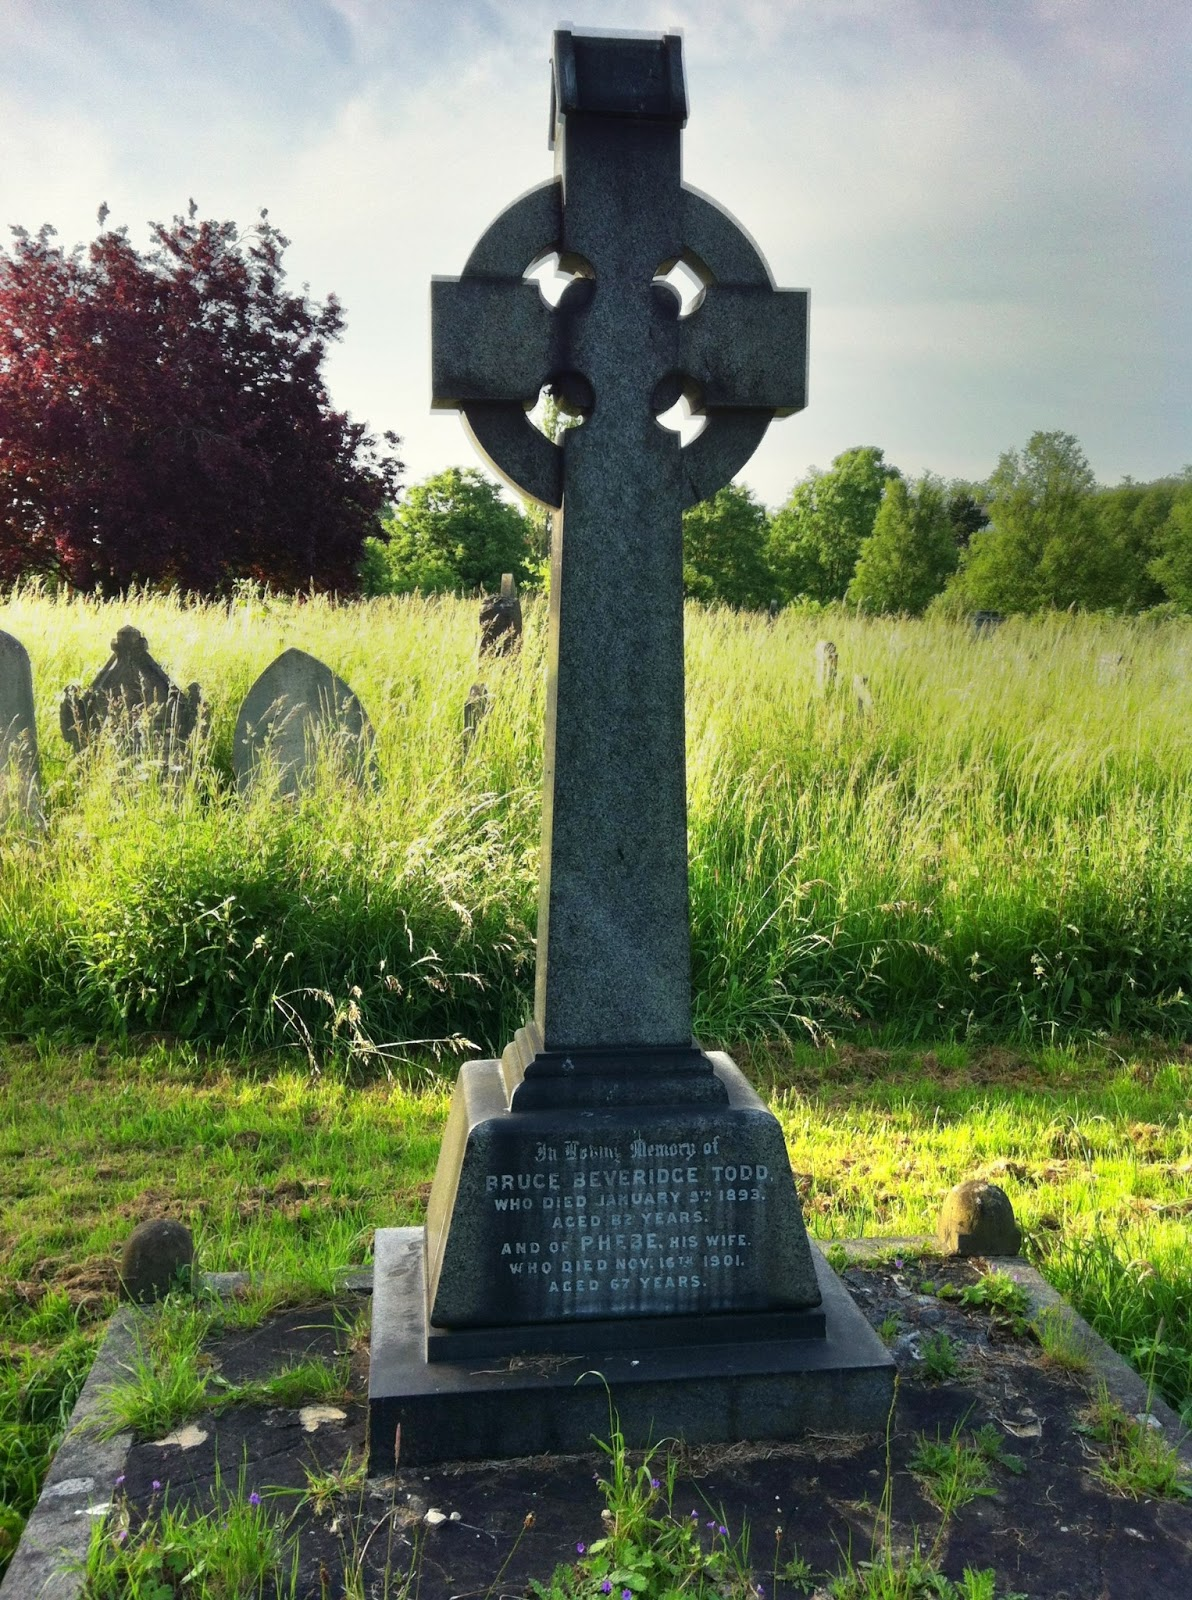 Todd family grave: Alexander Findlater Todd